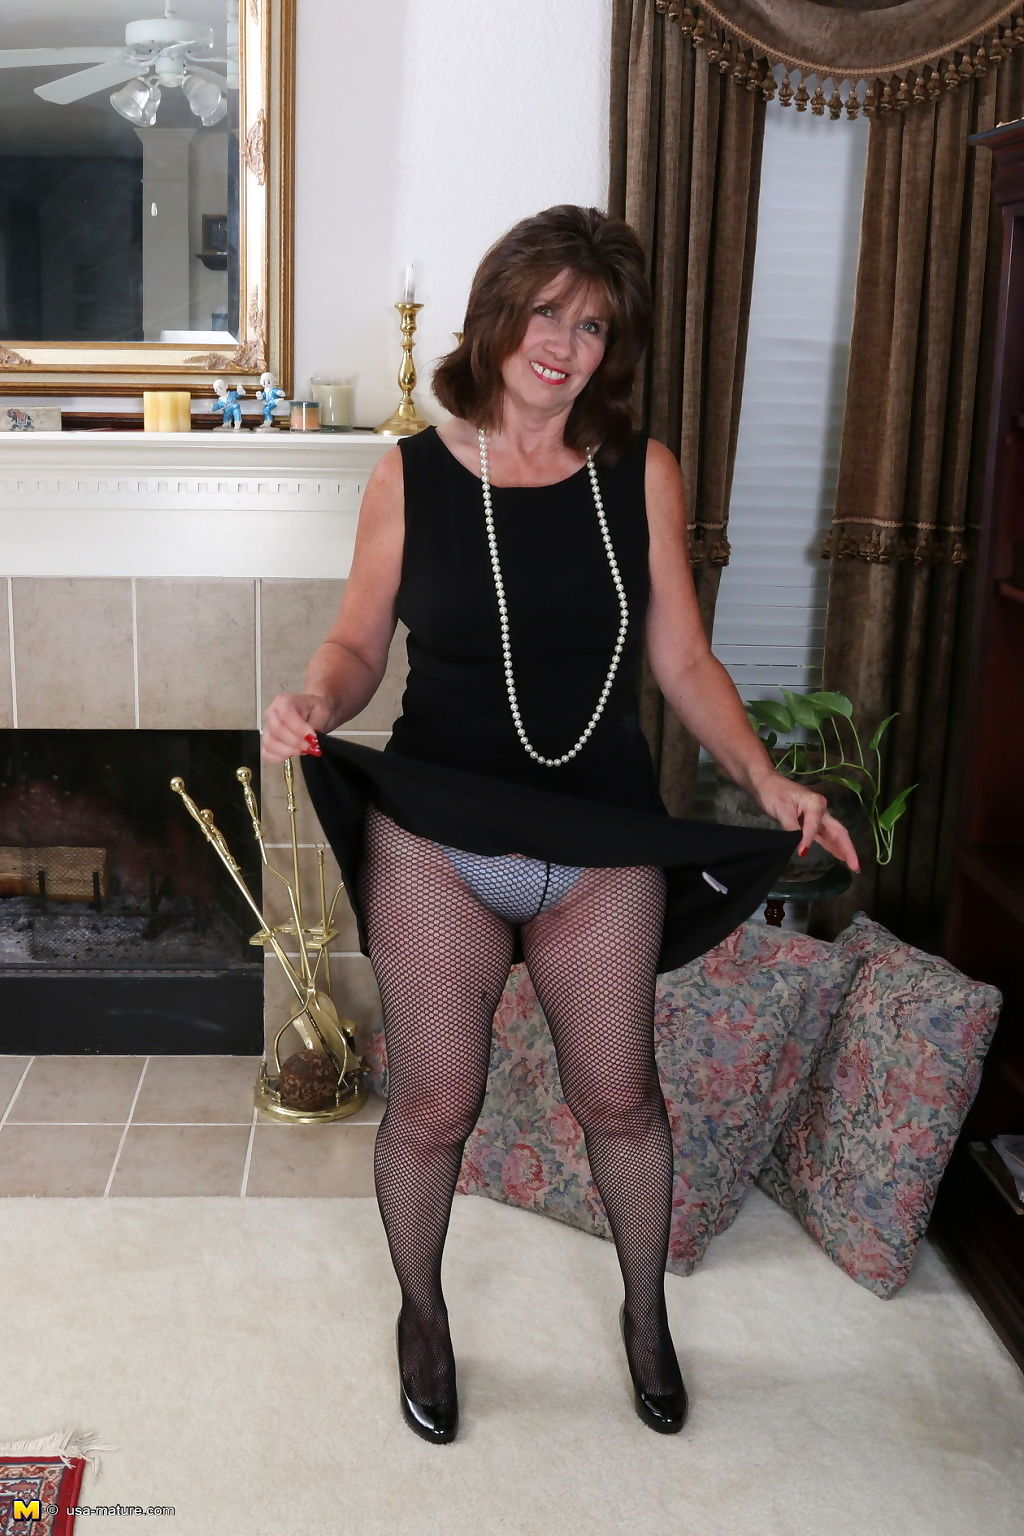 Usa mature housewive bunny gets very wet in fishnet pantyhose - part 3390